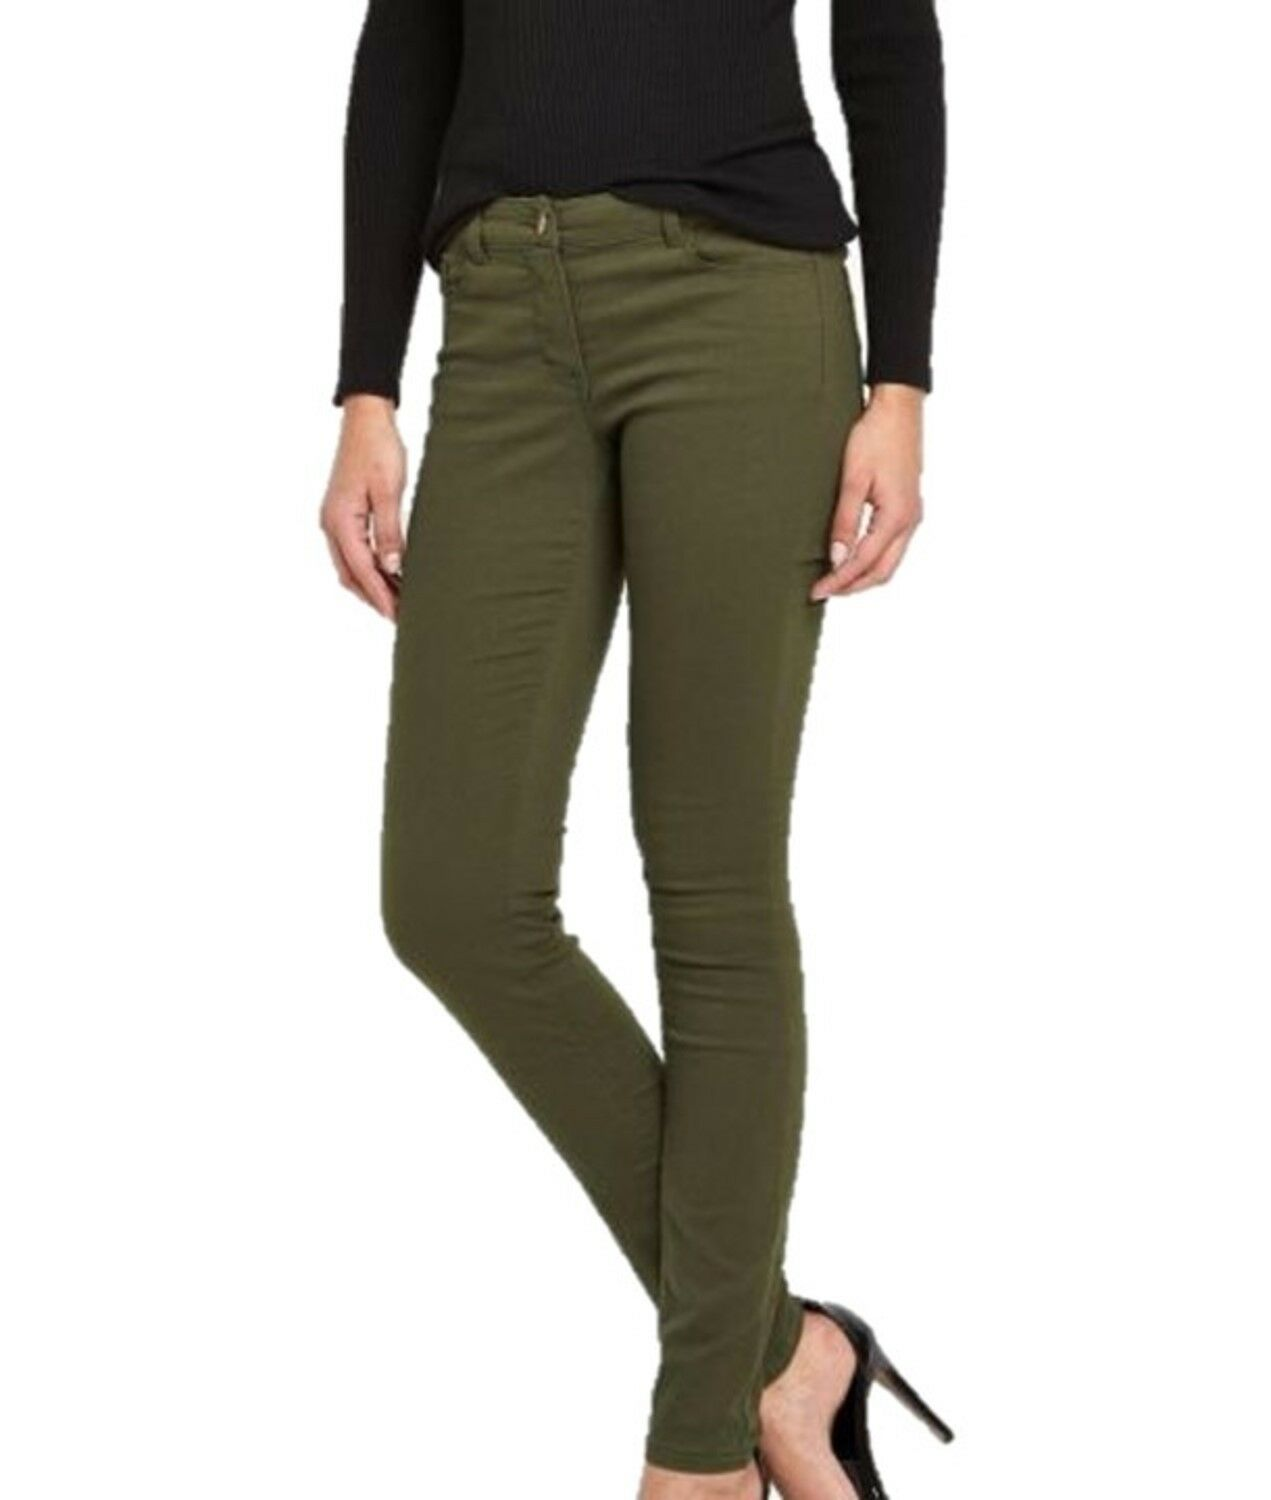 Ladies Ex Famous Store Pink Khaki Supper Skinny Womens Jeggings Skinny Jeans Ebay